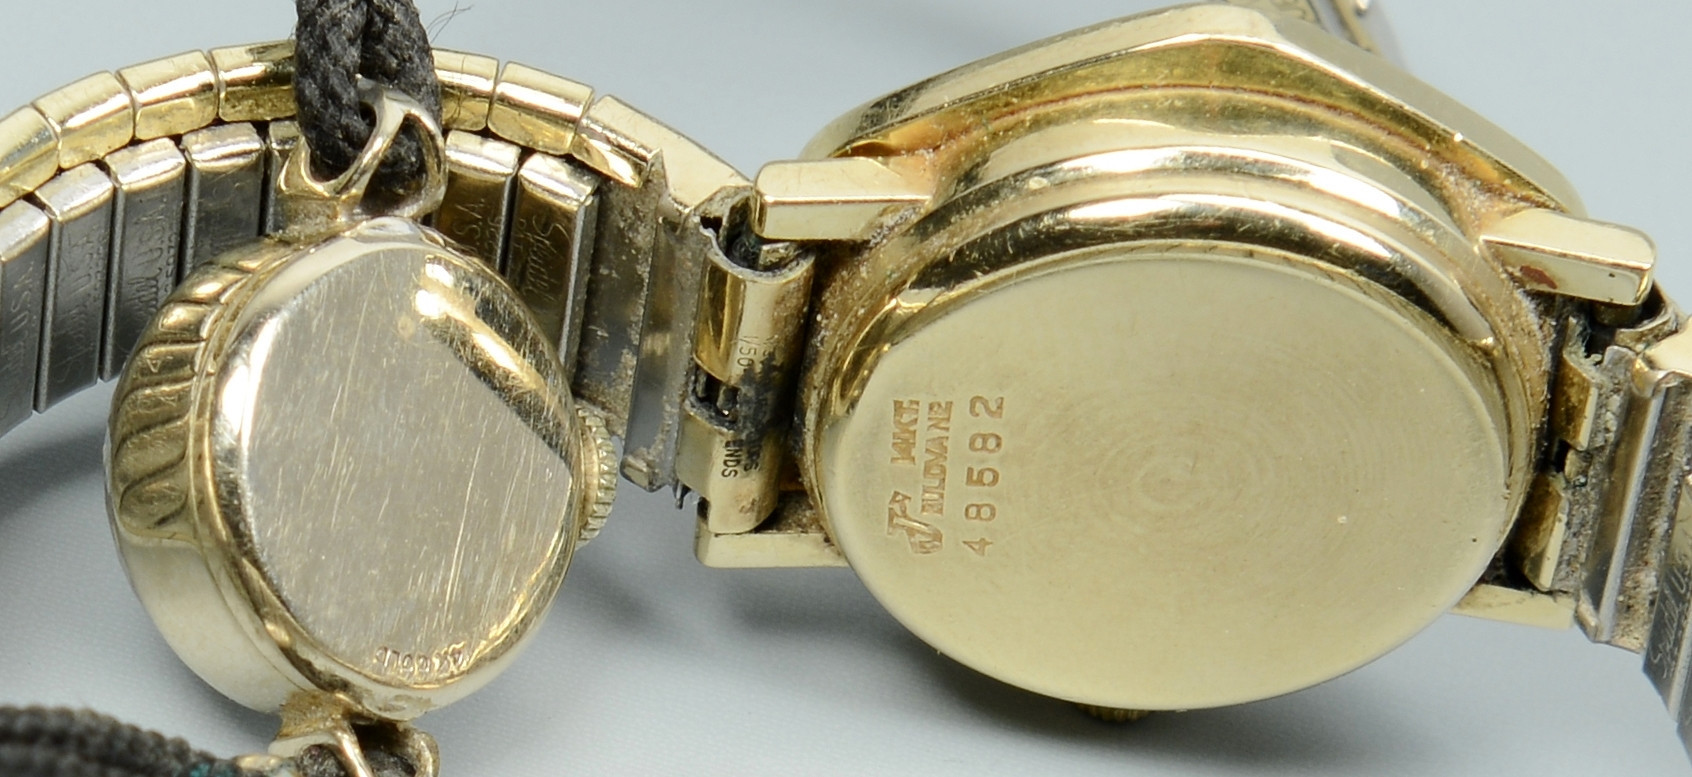 Lot 782: Four 14k Gold Wrist Watches